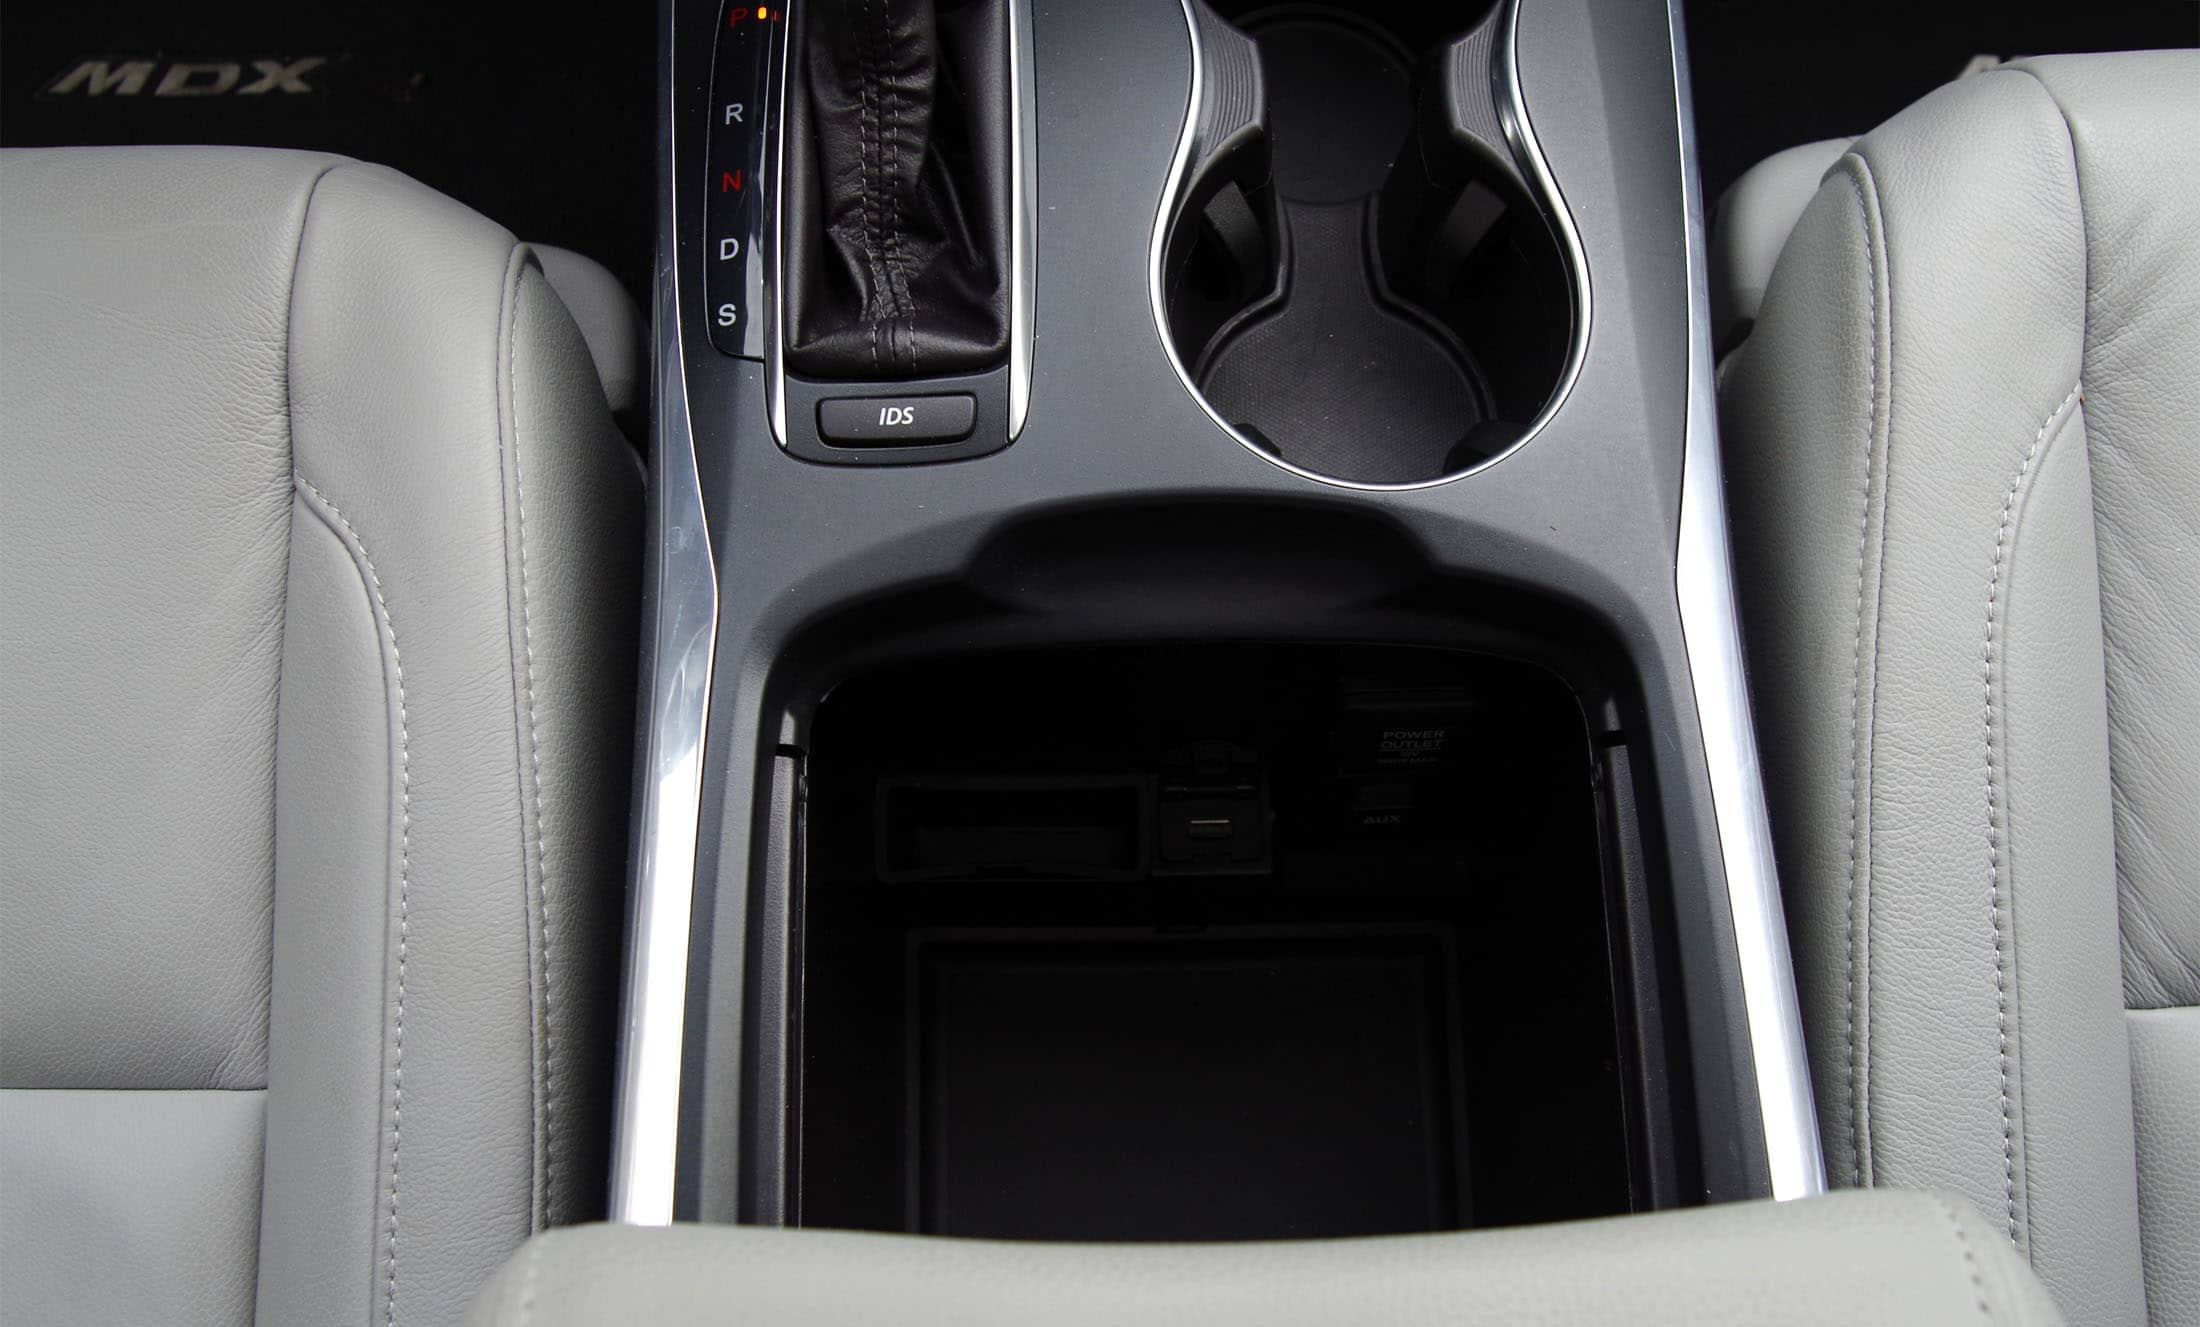 Store and charge your phone in the center console of the 2014 Acura MDX.